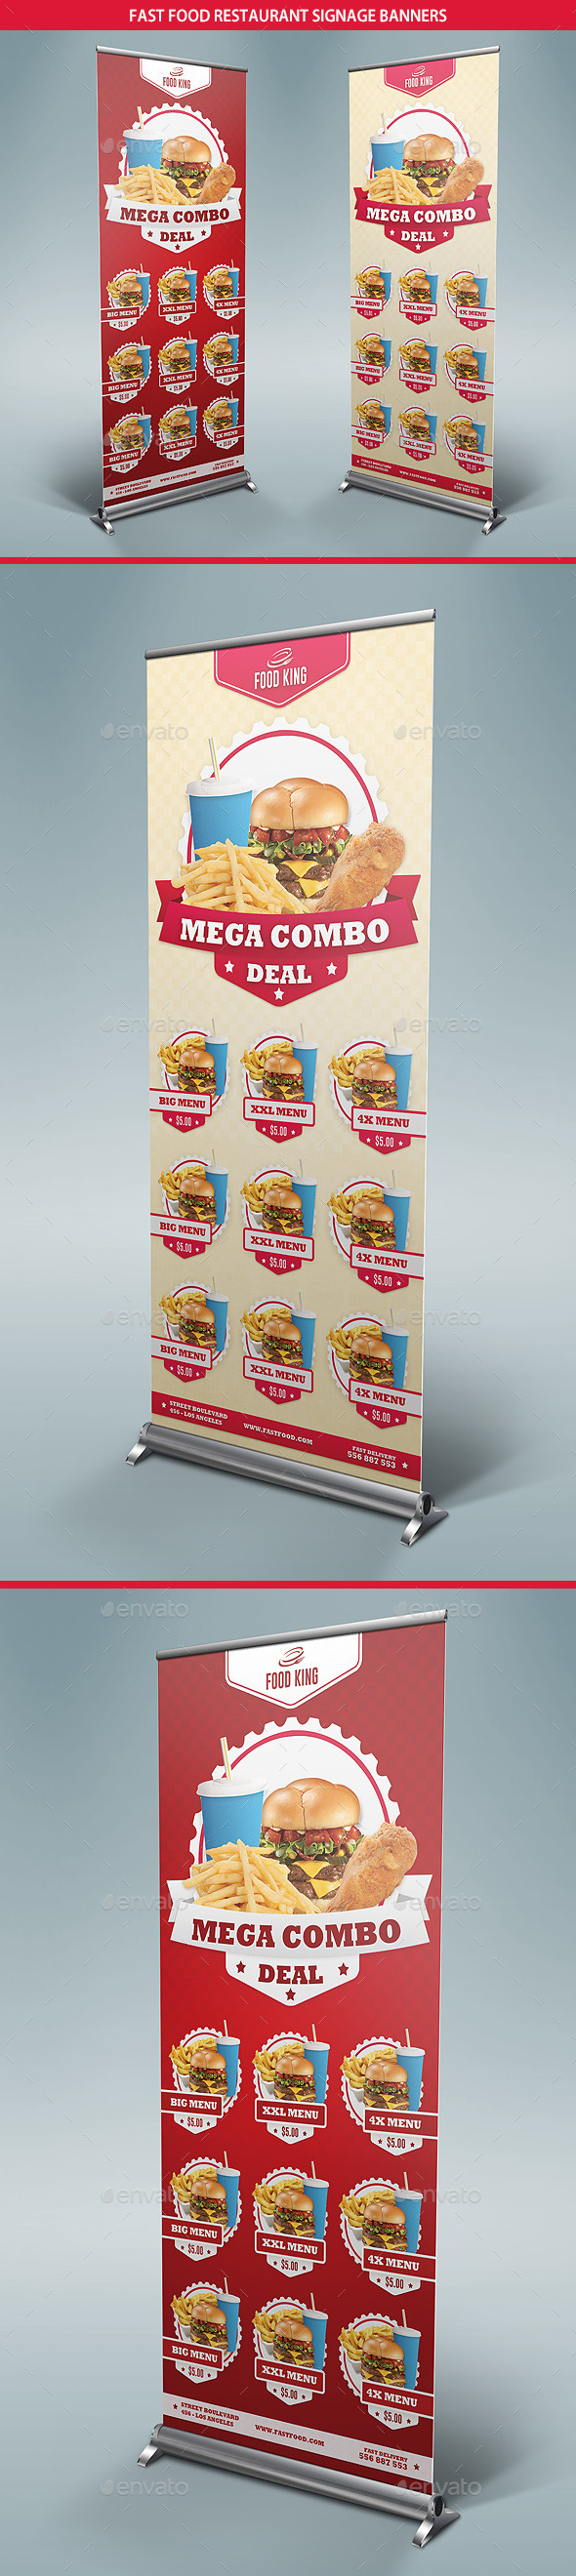 Restaurant Fast Food Menu Signage Banners - Signage Print Templates